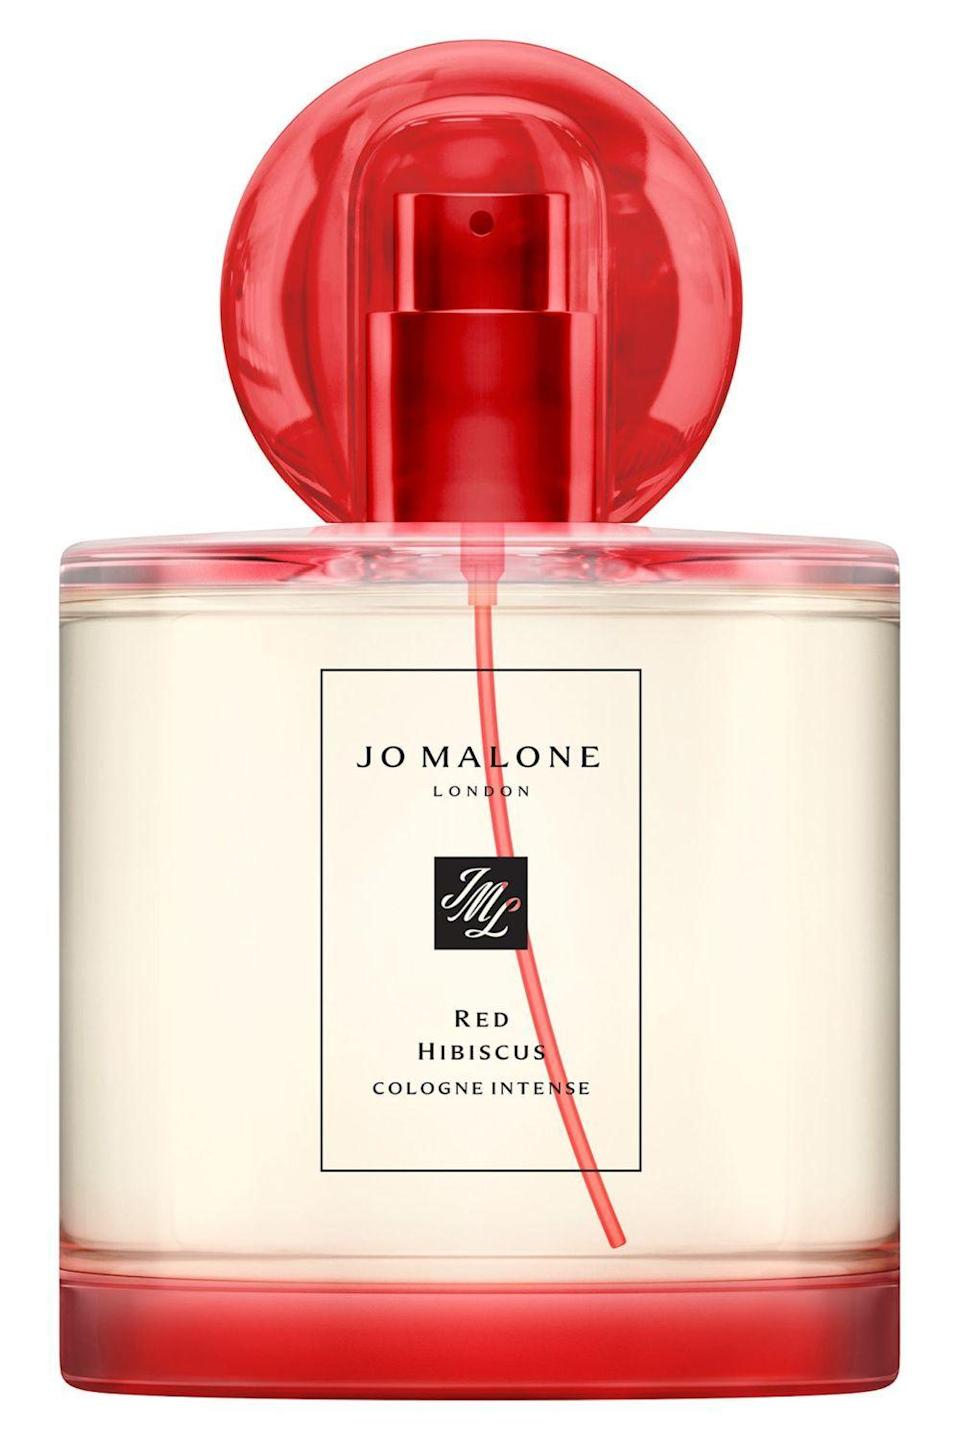 "<p><strong>Jo Malone London</strong></p><p>sephora.com</p><p><strong>$198.00</strong></p><p><a href=""https://go.redirectingat.com?id=74968X1596630&url=https%3A%2F%2Fwww.sephora.com%2Fproduct%2Fjo-malone-london-red-hibiscus-cologne-intense-P469860&sref=https%3A%2F%2Fwww.cosmopolitan.com%2Fstyle-beauty%2Ffashion%2Fg20108306%2Fbest-last-minute-mothers-day-gifts%2F"" rel=""nofollow noopener"" target=""_blank"" data-ylk=""slk:Shop Now"" class=""link rapid-noclick-resp"">Shop Now</a></p><p>A fun, floral scent with notes of mandarin, red hibiscus, and vanilla that's not too heavy will become her new favorite fragrance she can add to her vanity. Shop this bottle online, then head to your local Sephora to pick it up when it's ready. Easy!<br></p>"